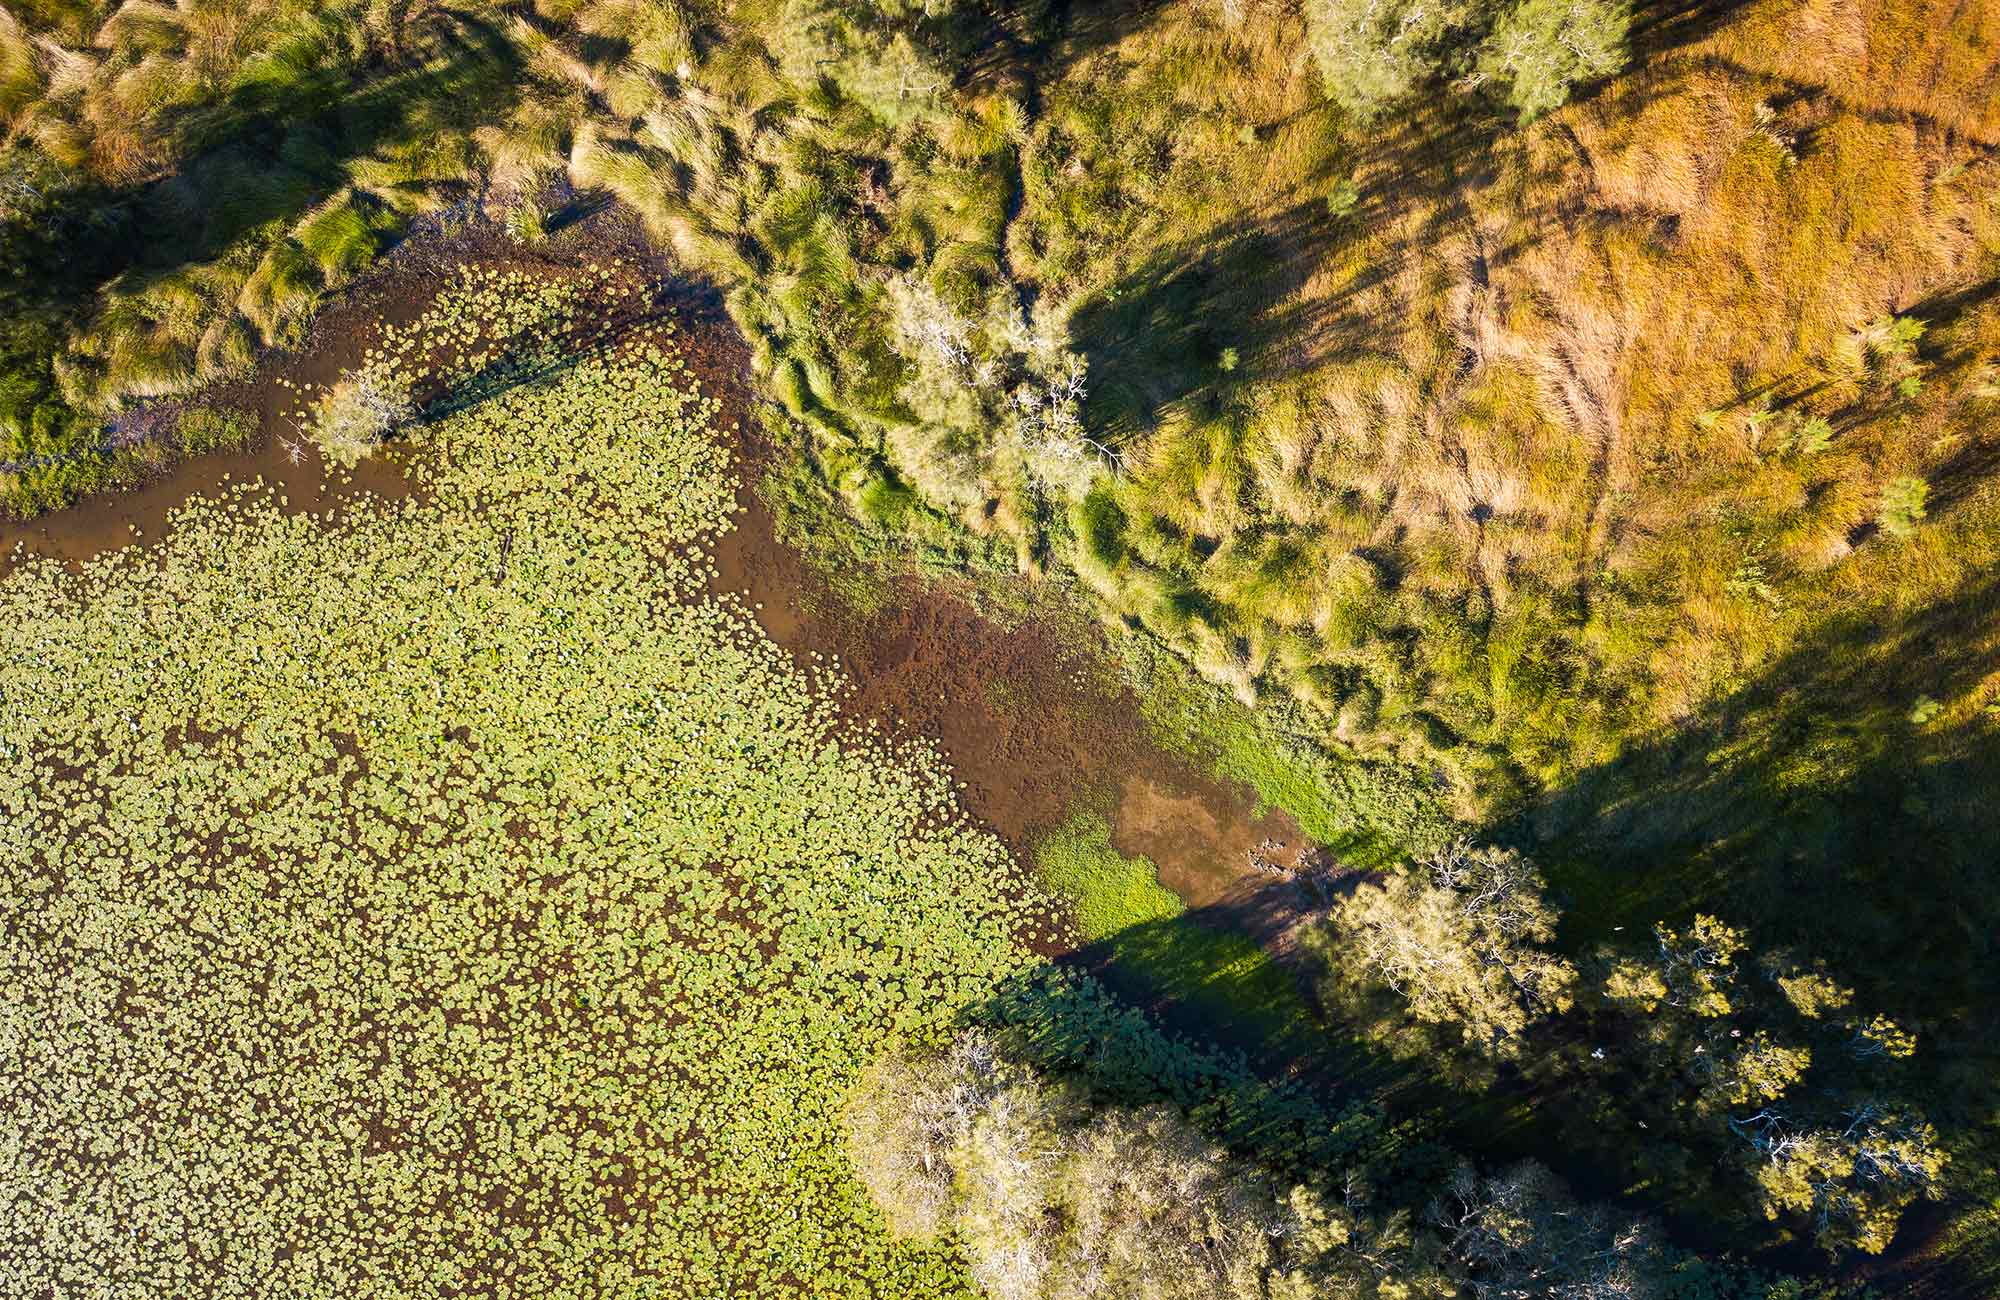 Bird's eye view of the Everlasting Swamp wetland. Photo: John Spencer/OEH